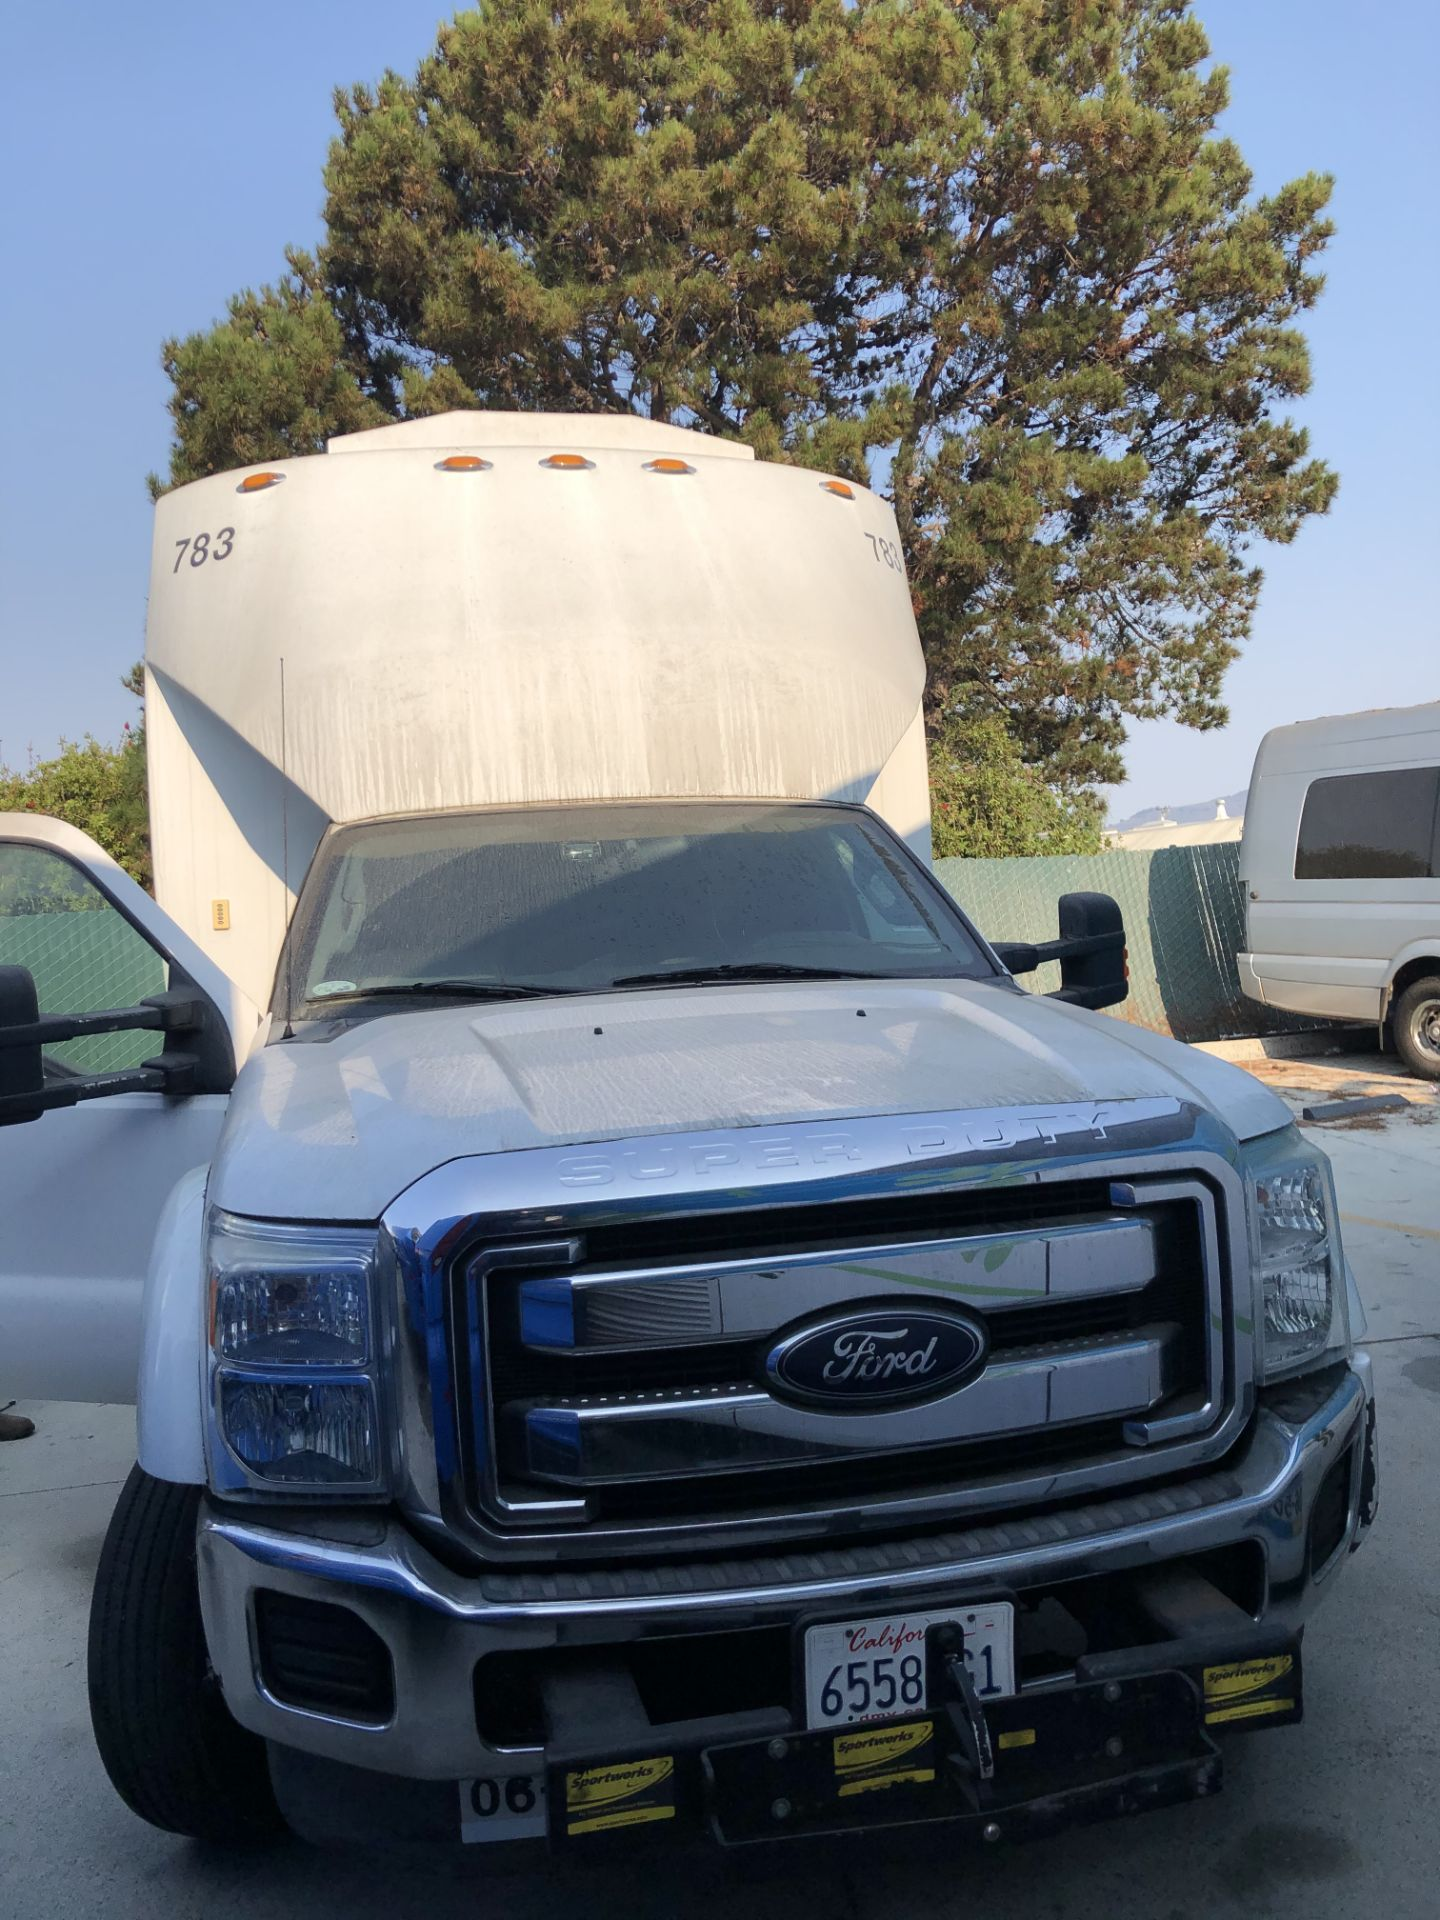 Ford F550 Shuttle Bus - Image 2 of 6